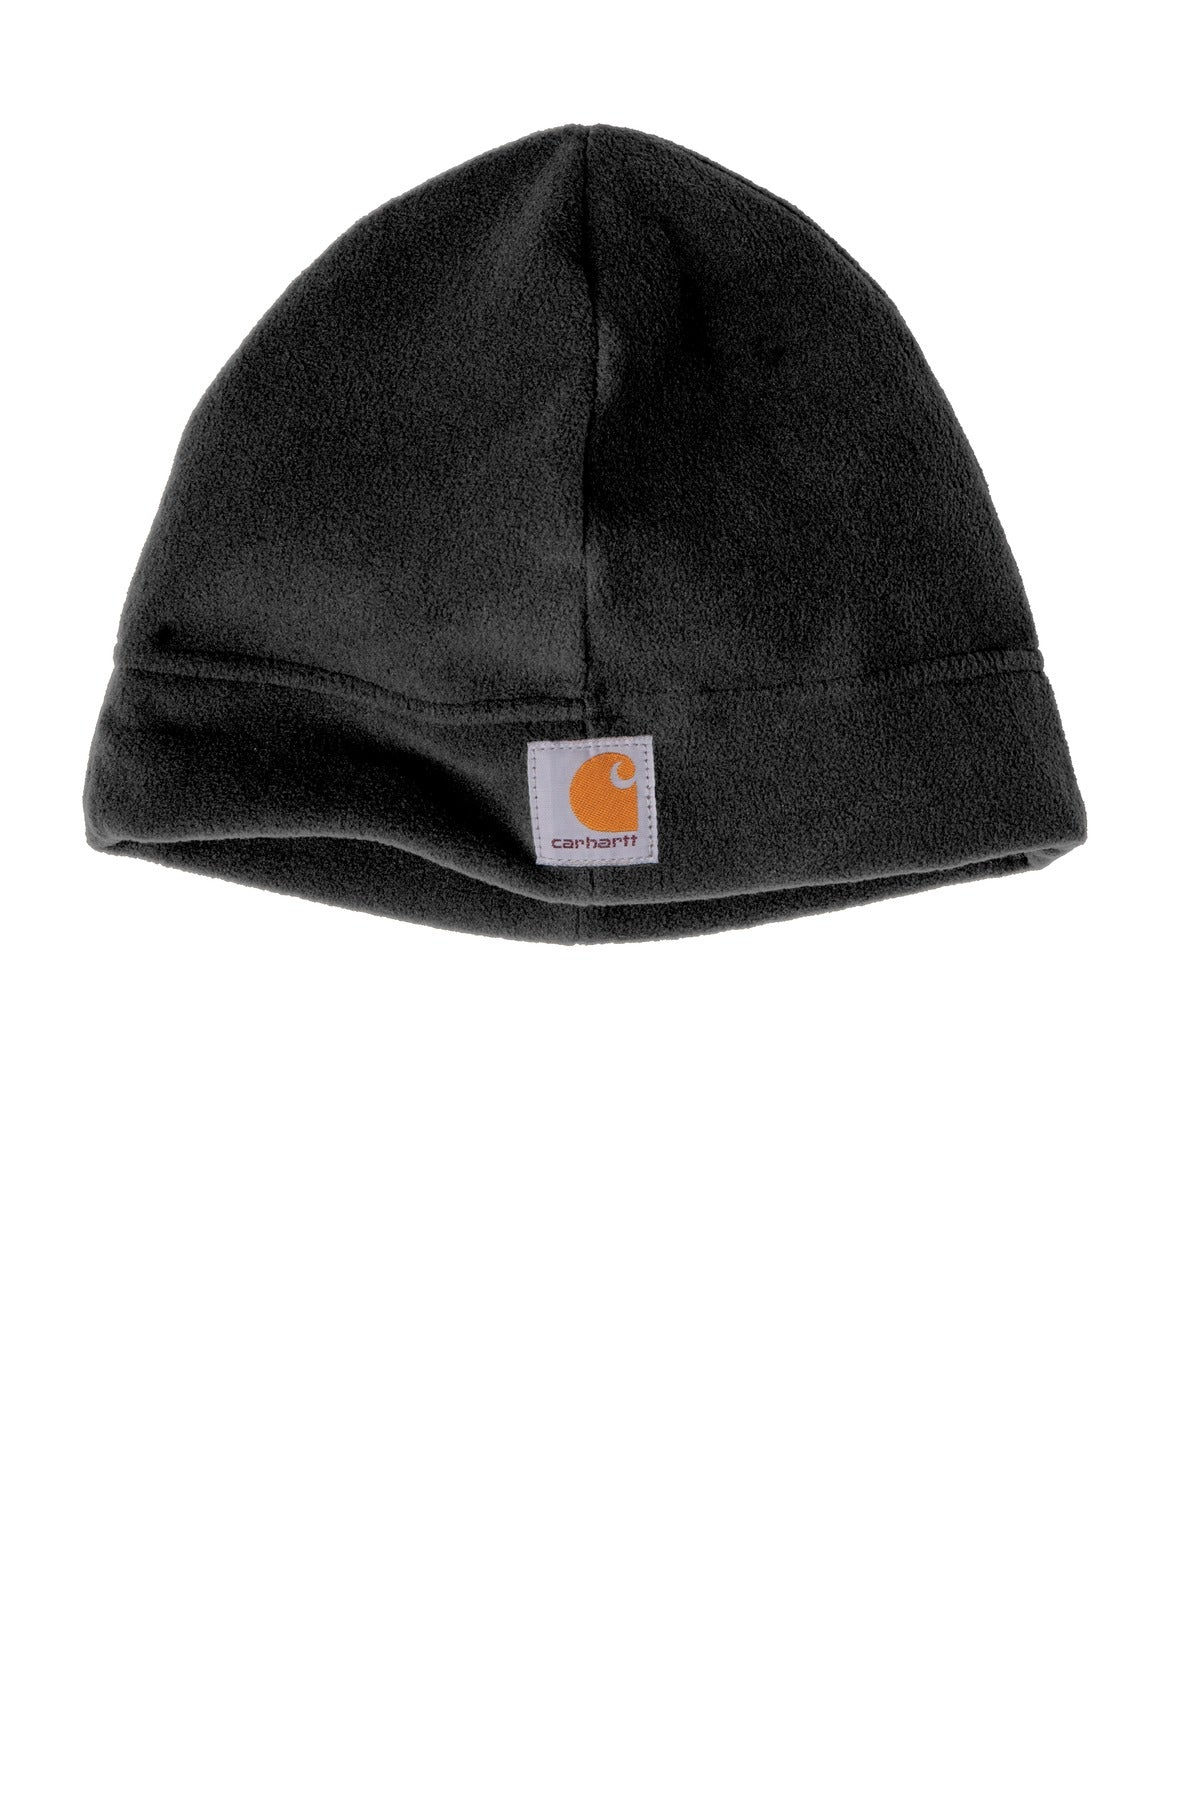 Carhartt  Fleece Hat. CTA207